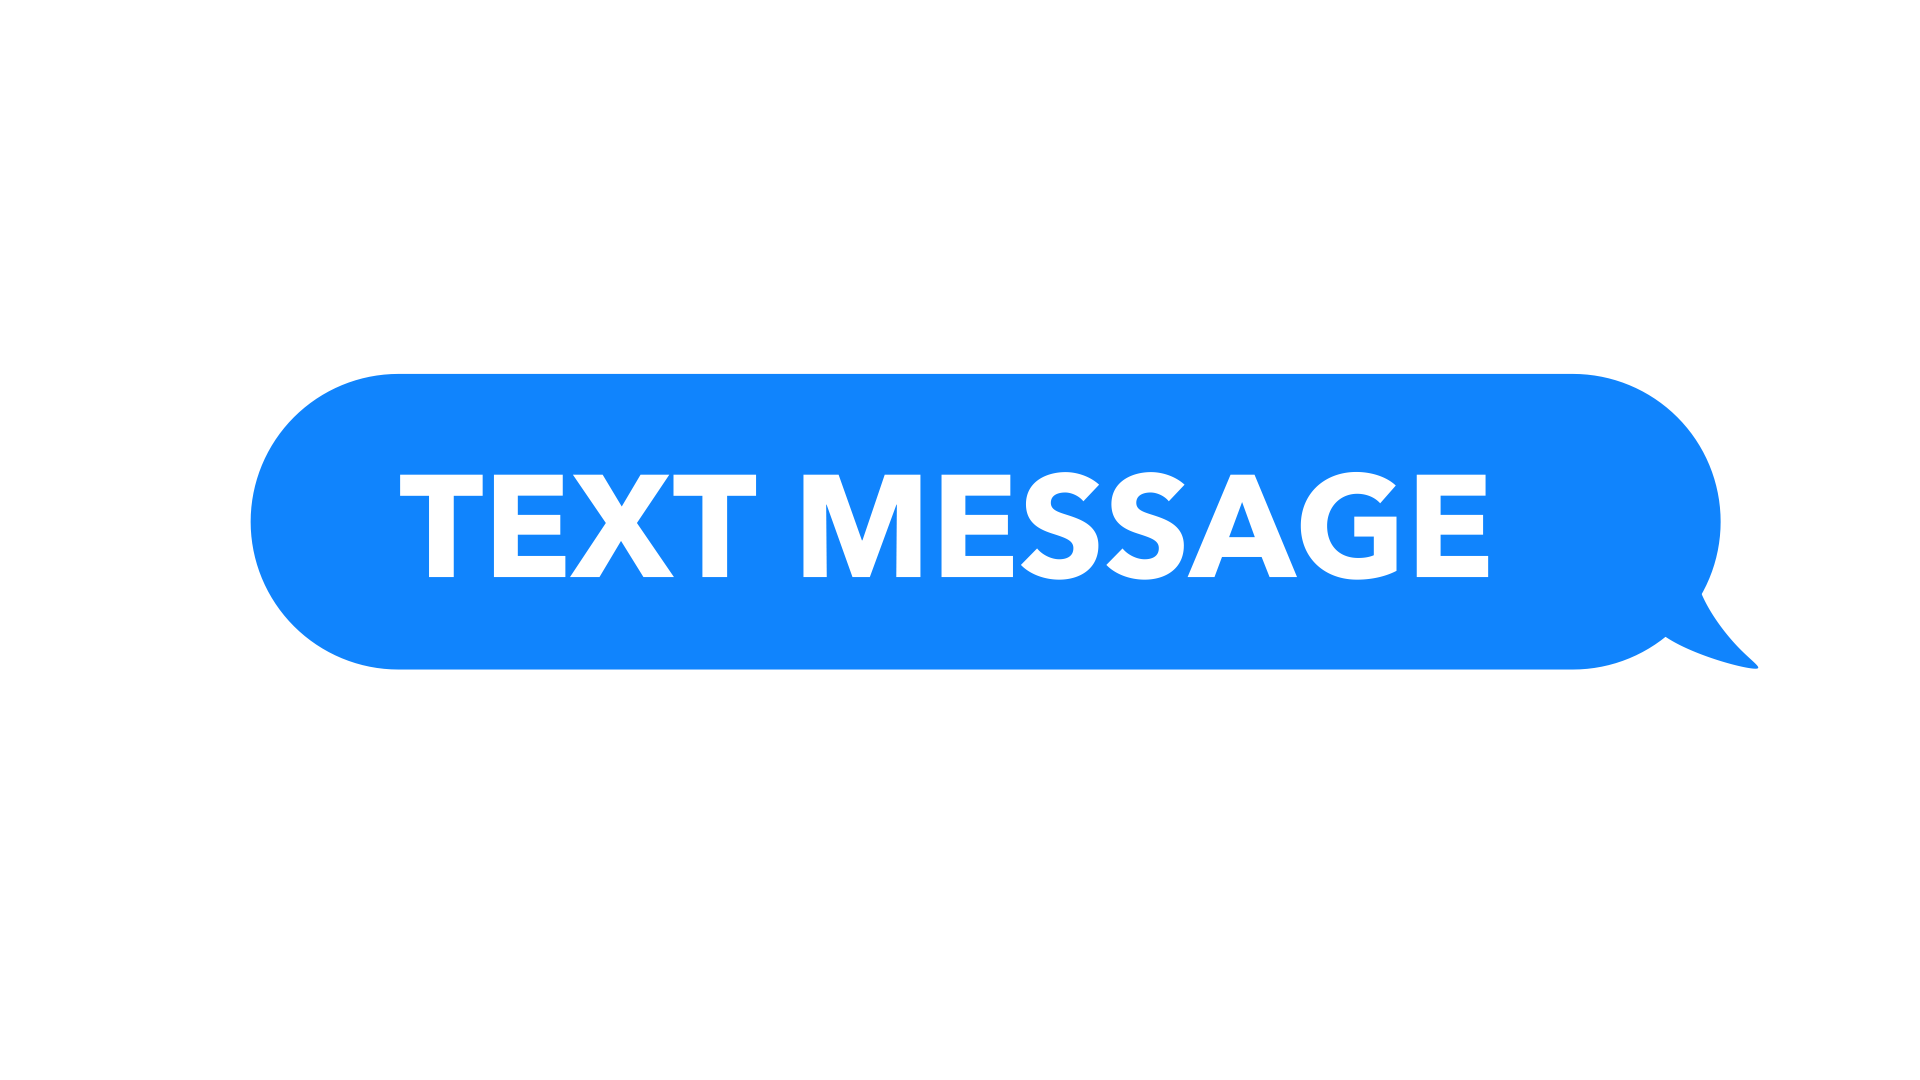 text messages vol.2 - style 6